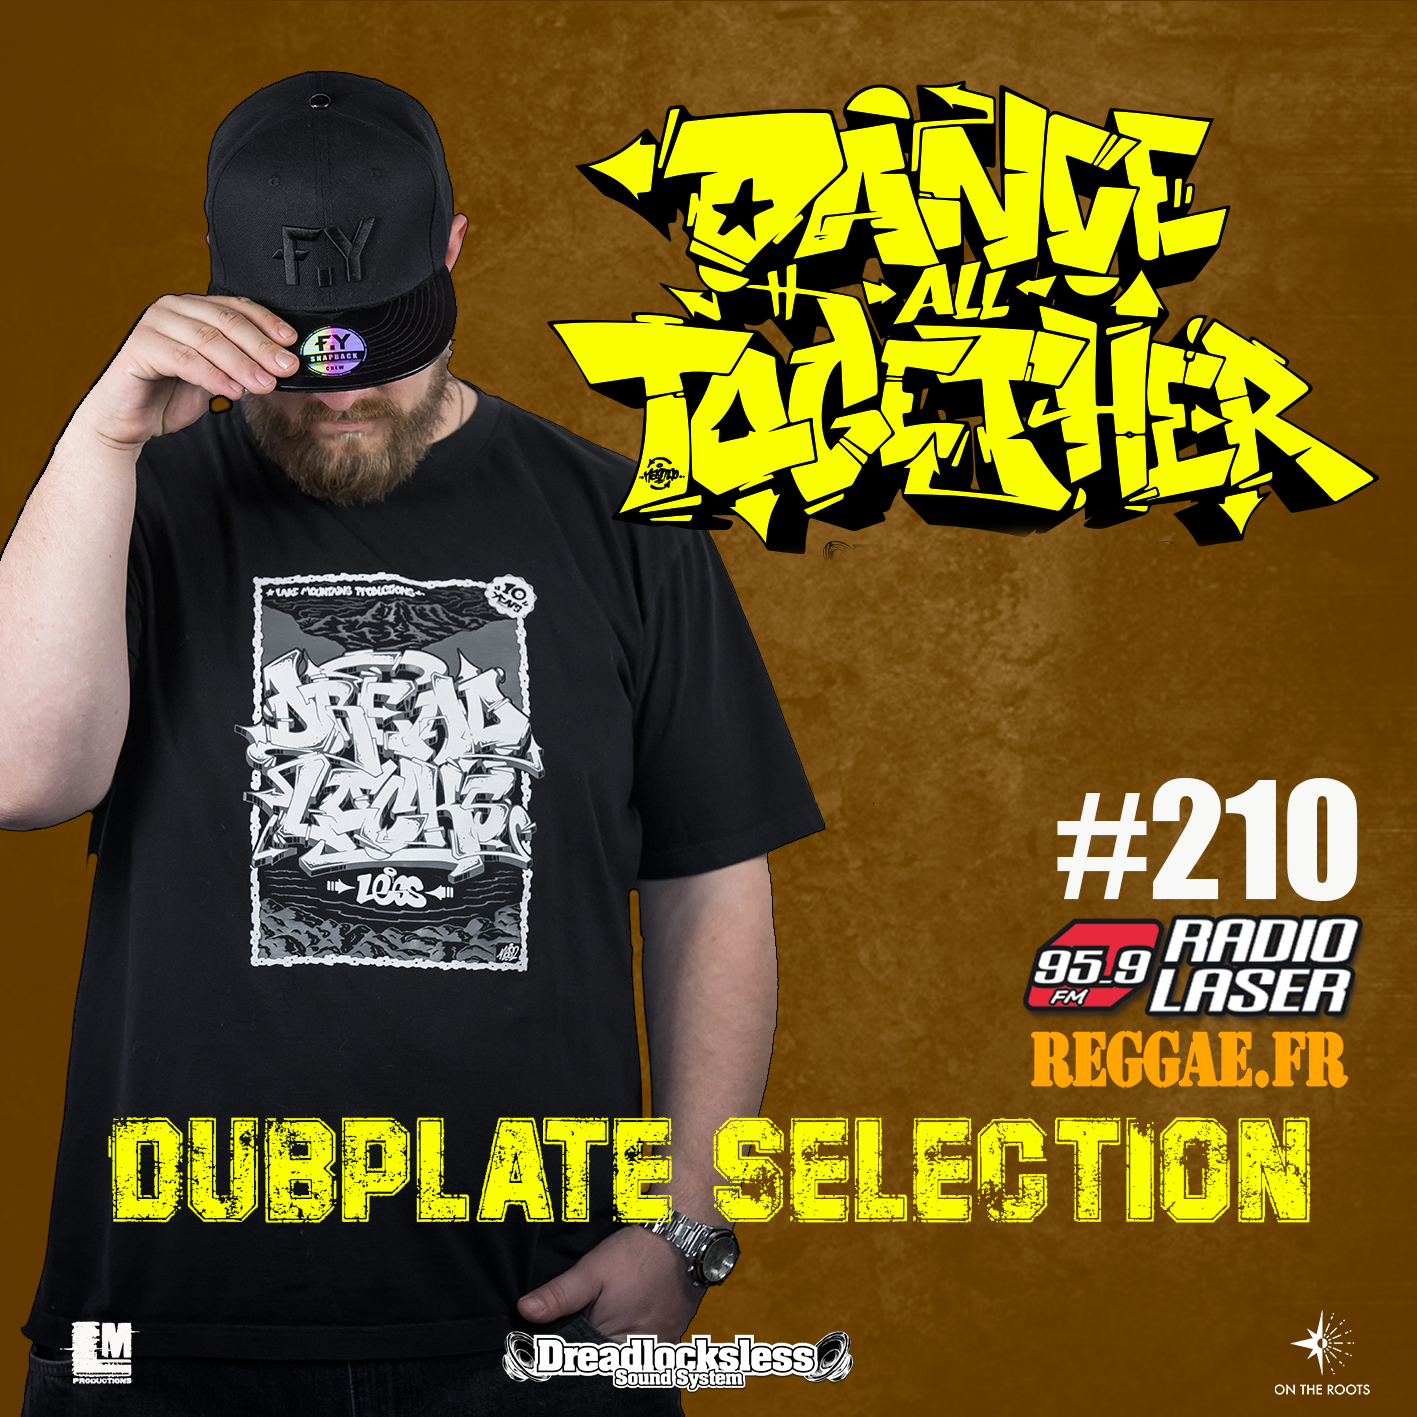 Dance All Together #210 Dubplate Selection 19.11.2018